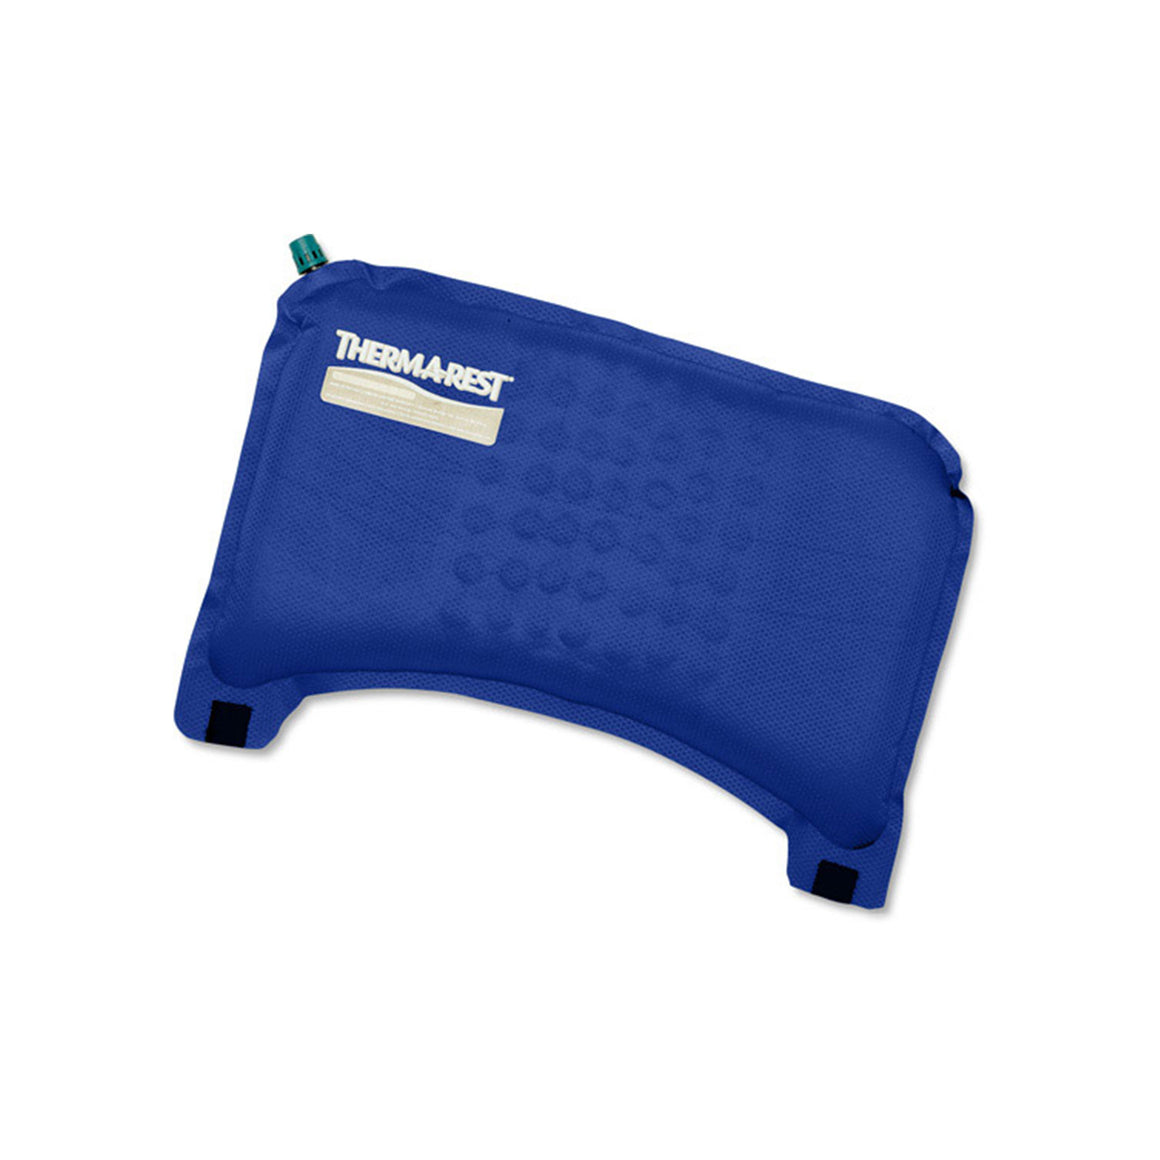 Thermarest Travel Cushion